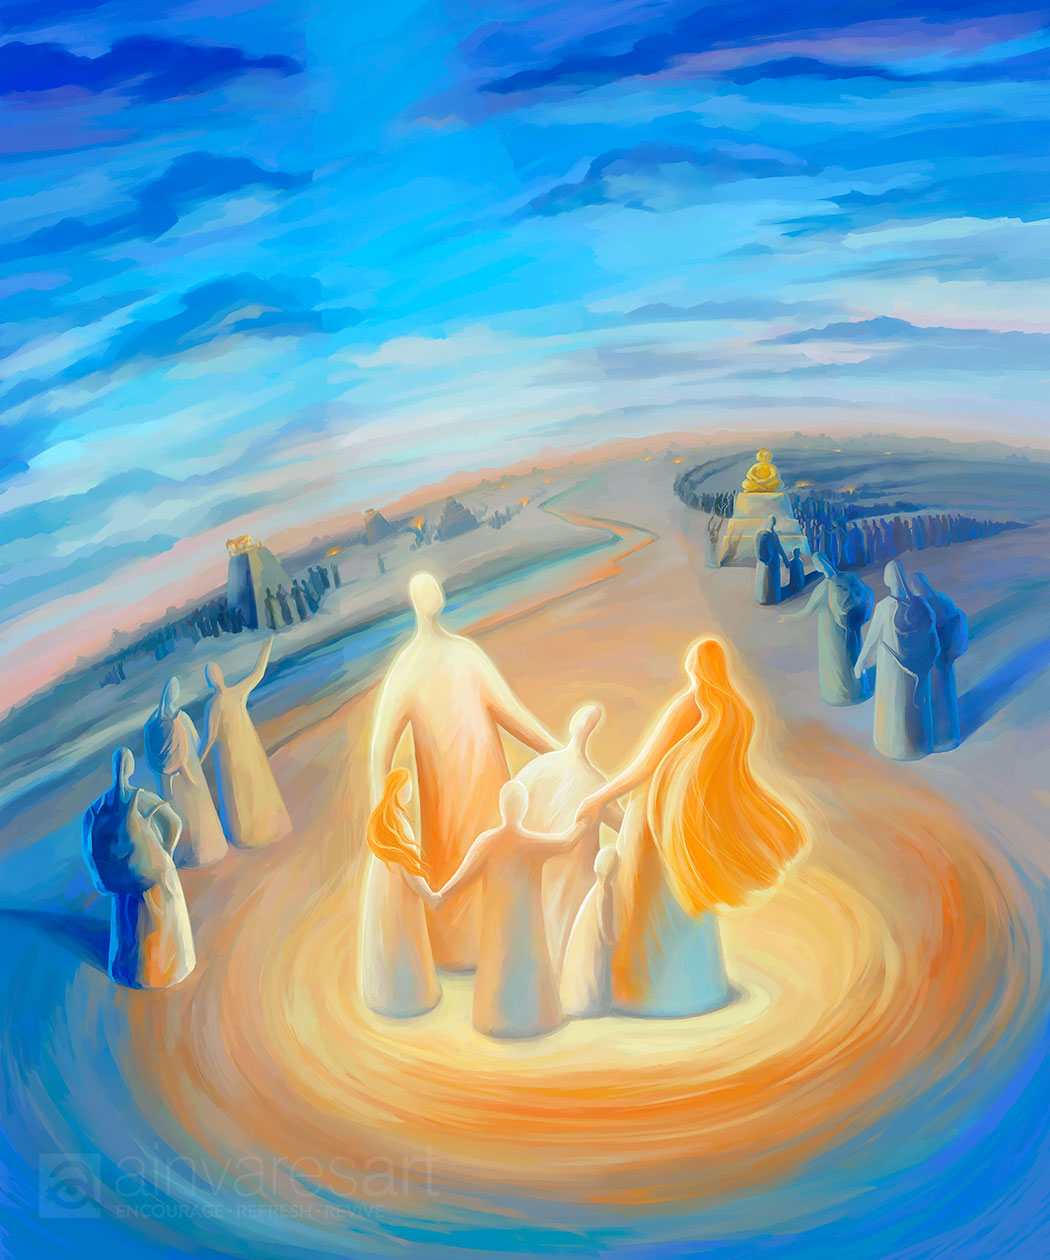 Art print - But as for me and my household, we will serve the Lord, Joshua 24:15  - Ain Vares Art